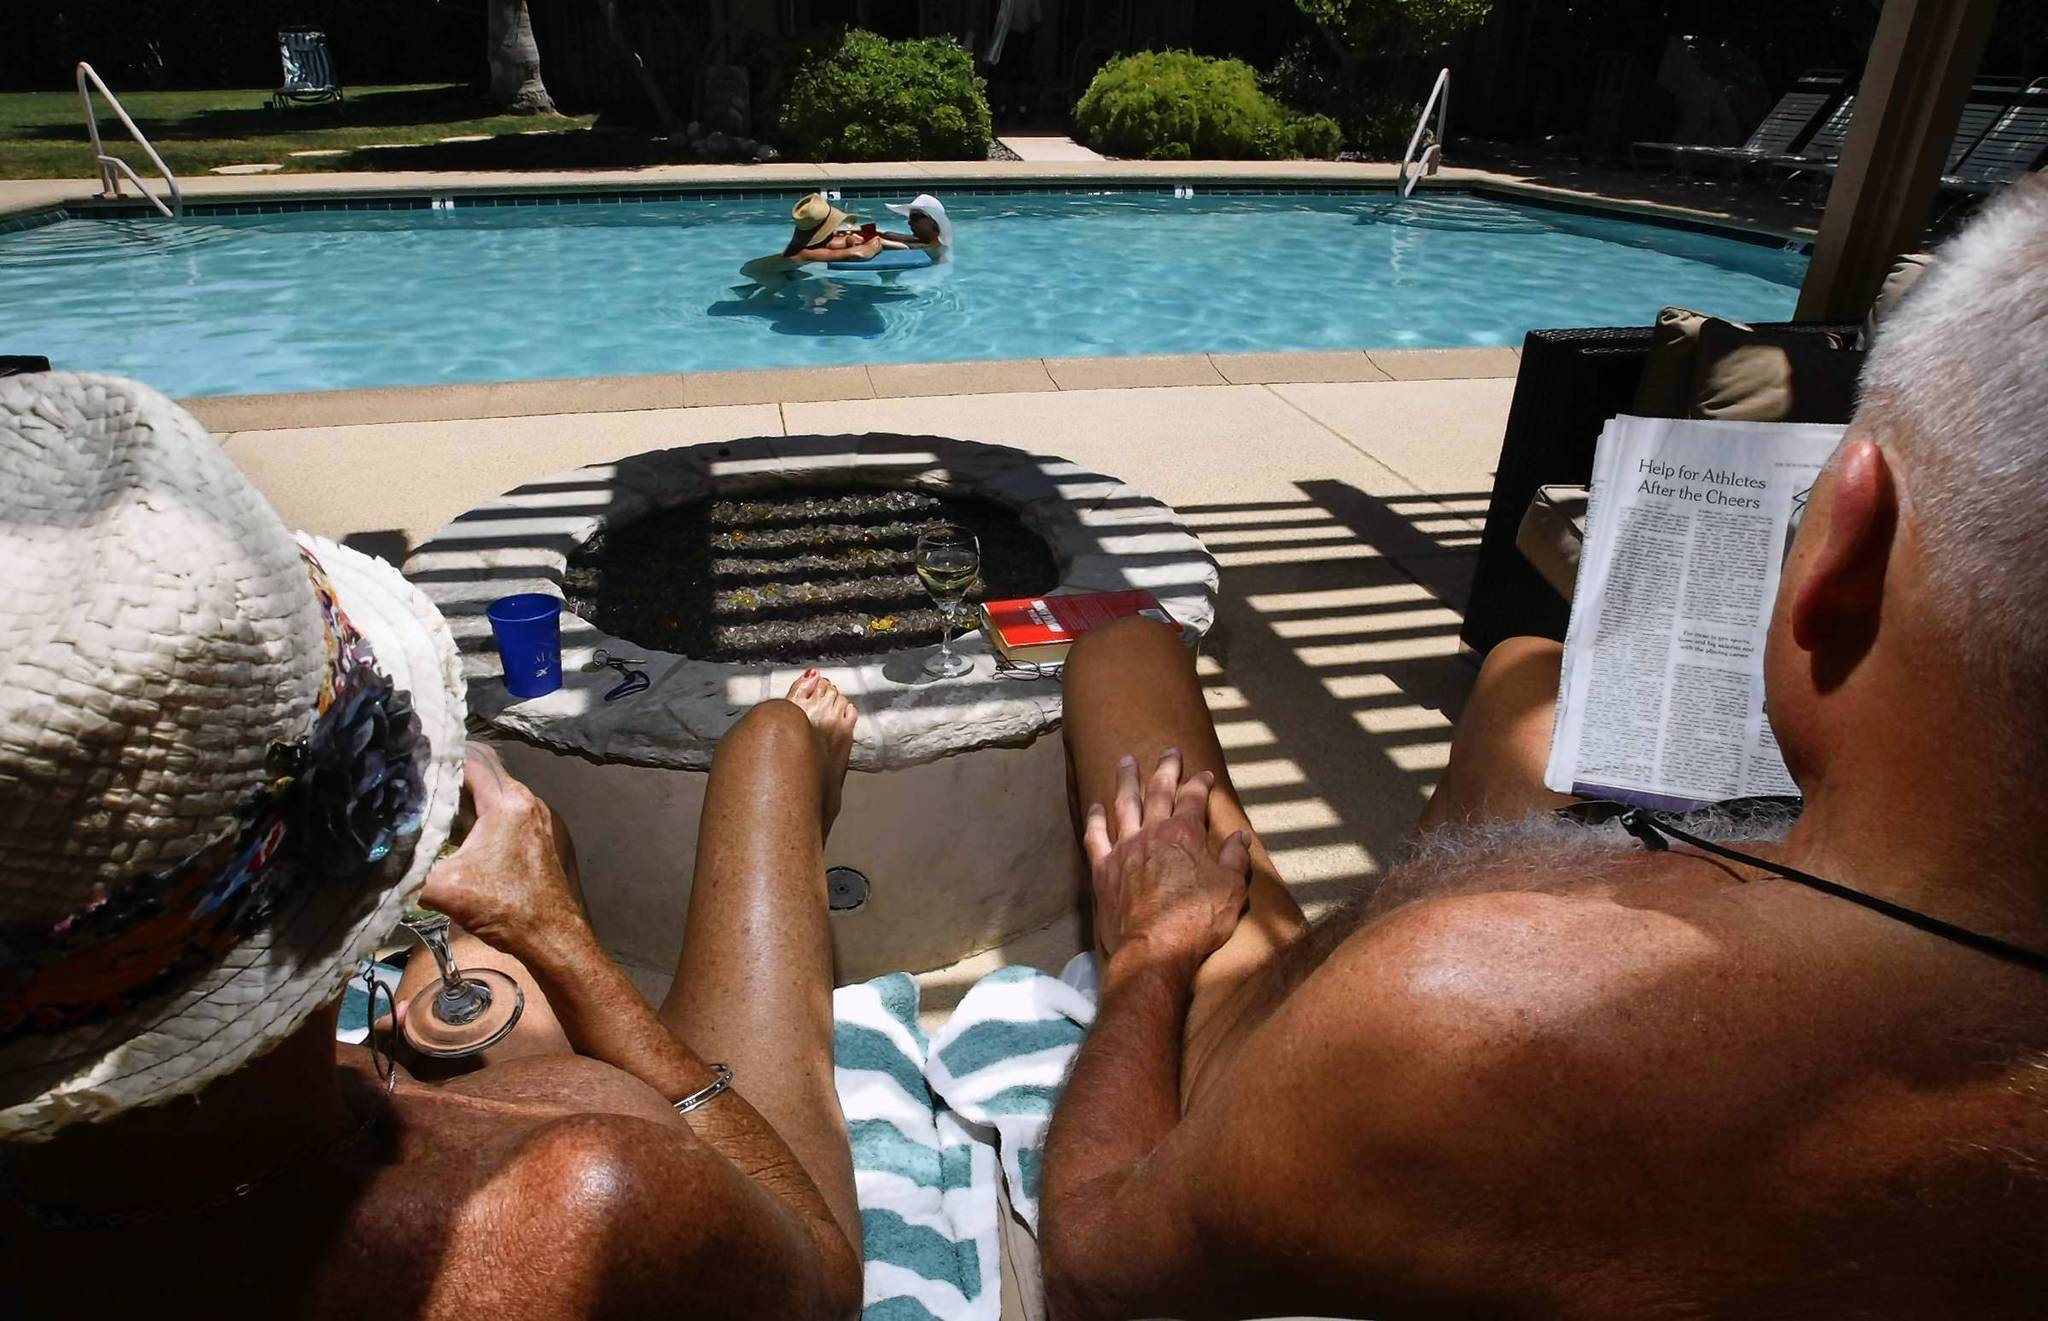 Judy and her husband, Mike, lounge by the pool at the Desert Sun nudist resort in Palm Springs. The Maryland couple have been making the resort their vacation destination for the last seven years. They agree with the owners' recent decision to ban children.